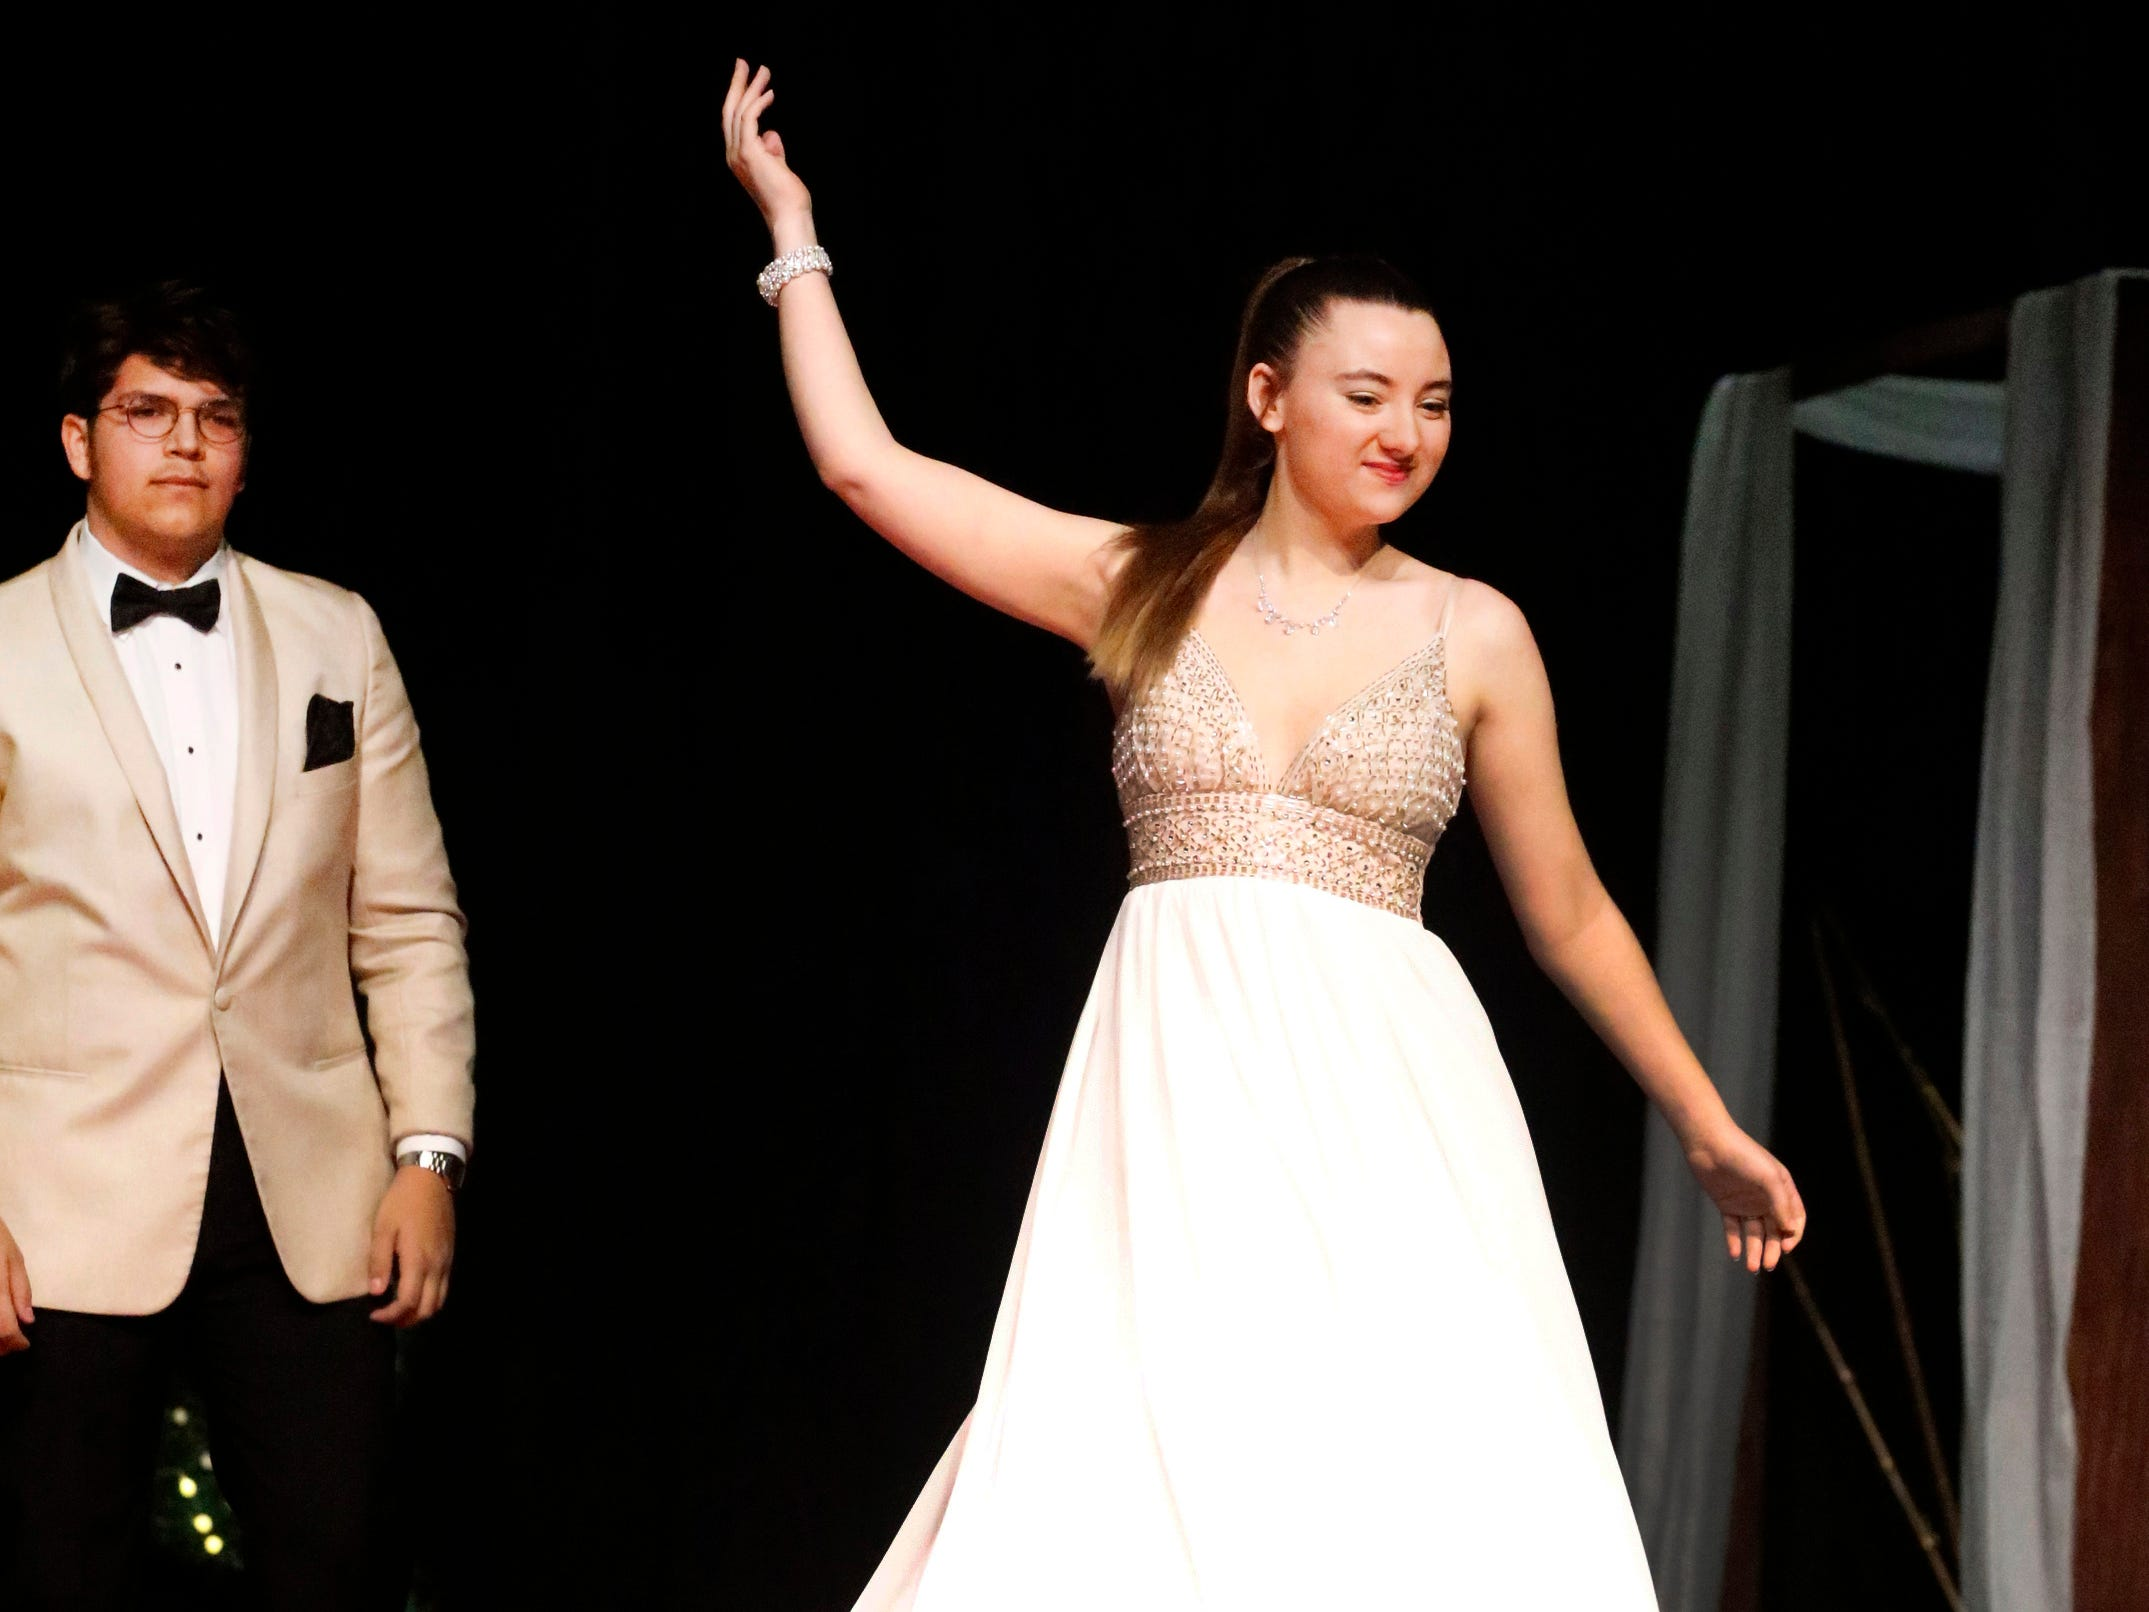 Aubri Shanks steps forward to show off her dress as Marc Padilla waits to show off his tux during the Siegel Prom Fashion show on Thursday, Feb. 14, 2019.